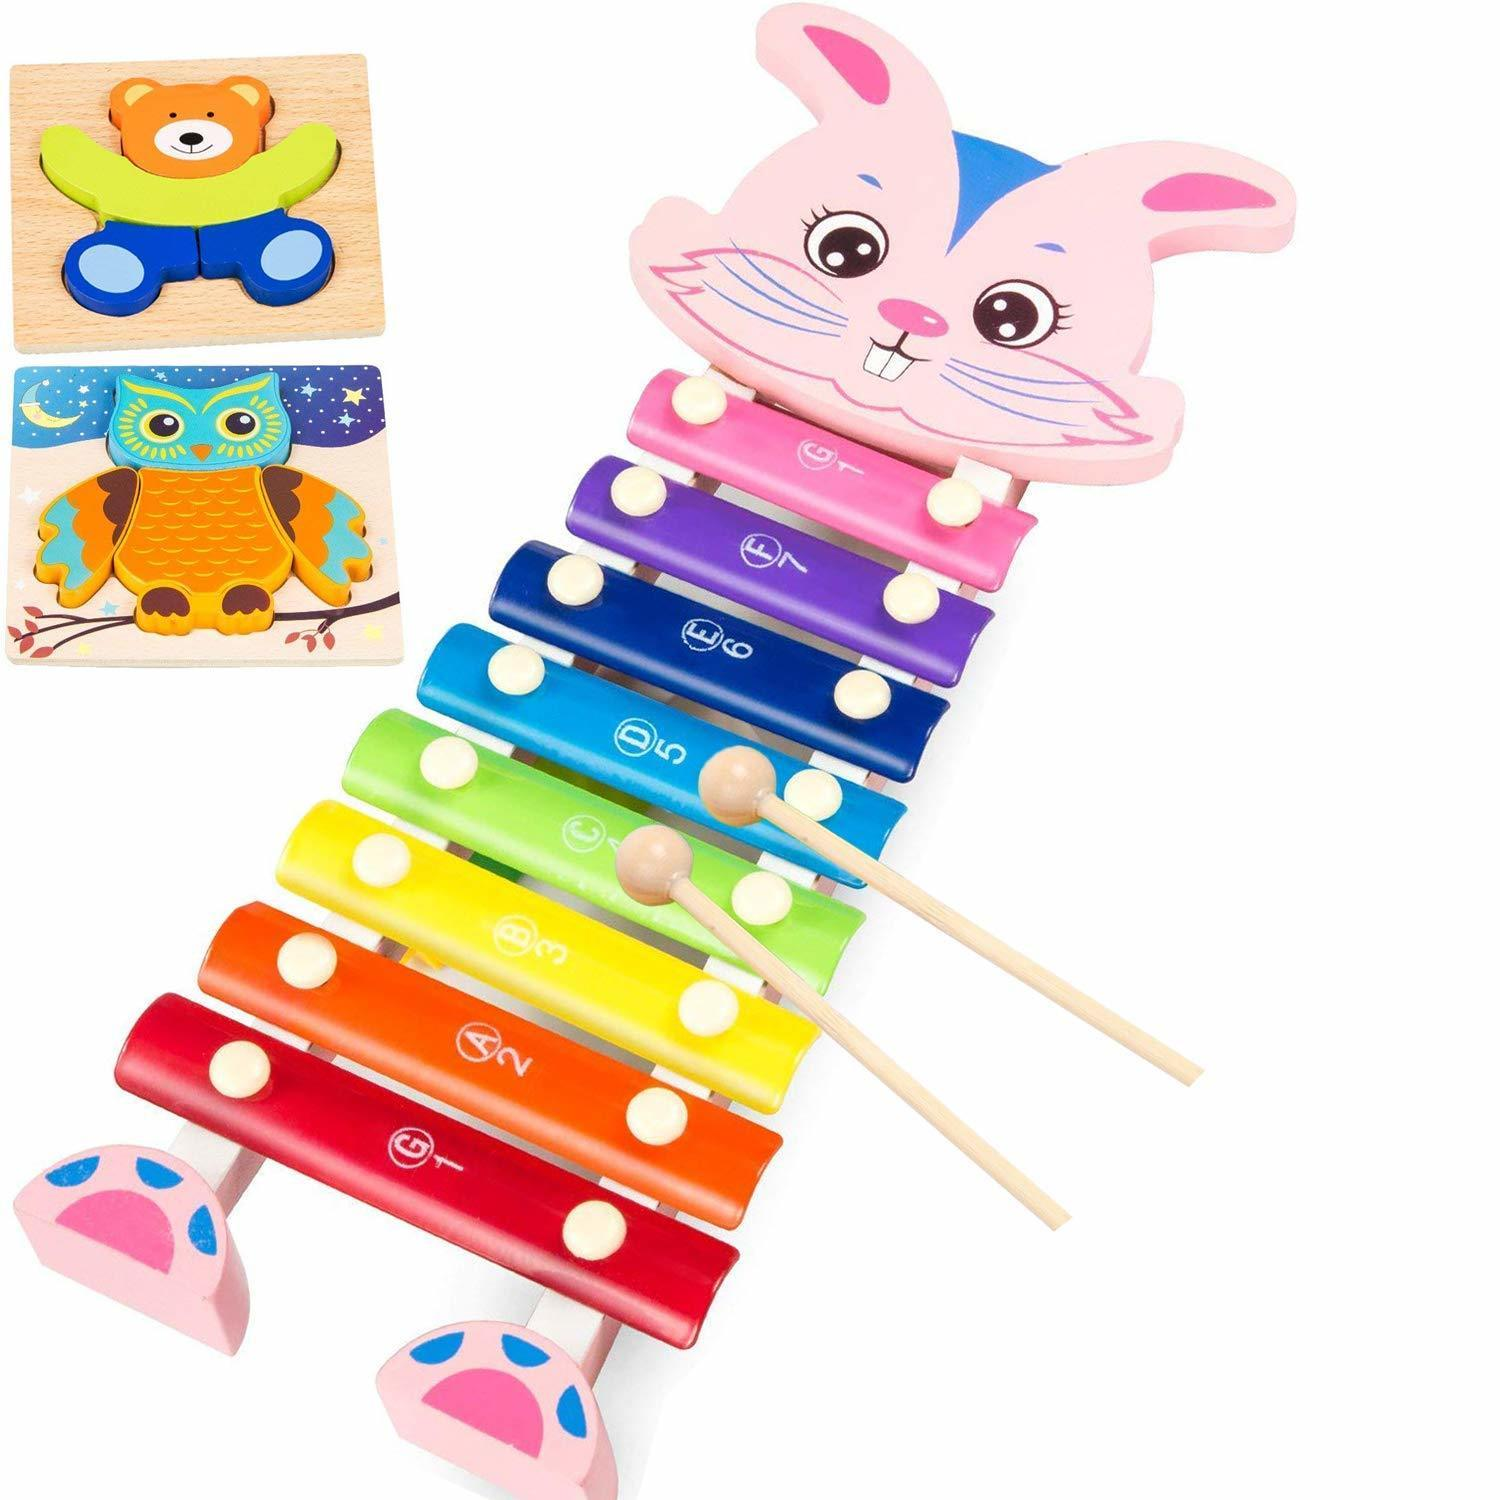 amagoing wooden xylophone, rabbit hand knock percussion musical instruments  toys for children kids b